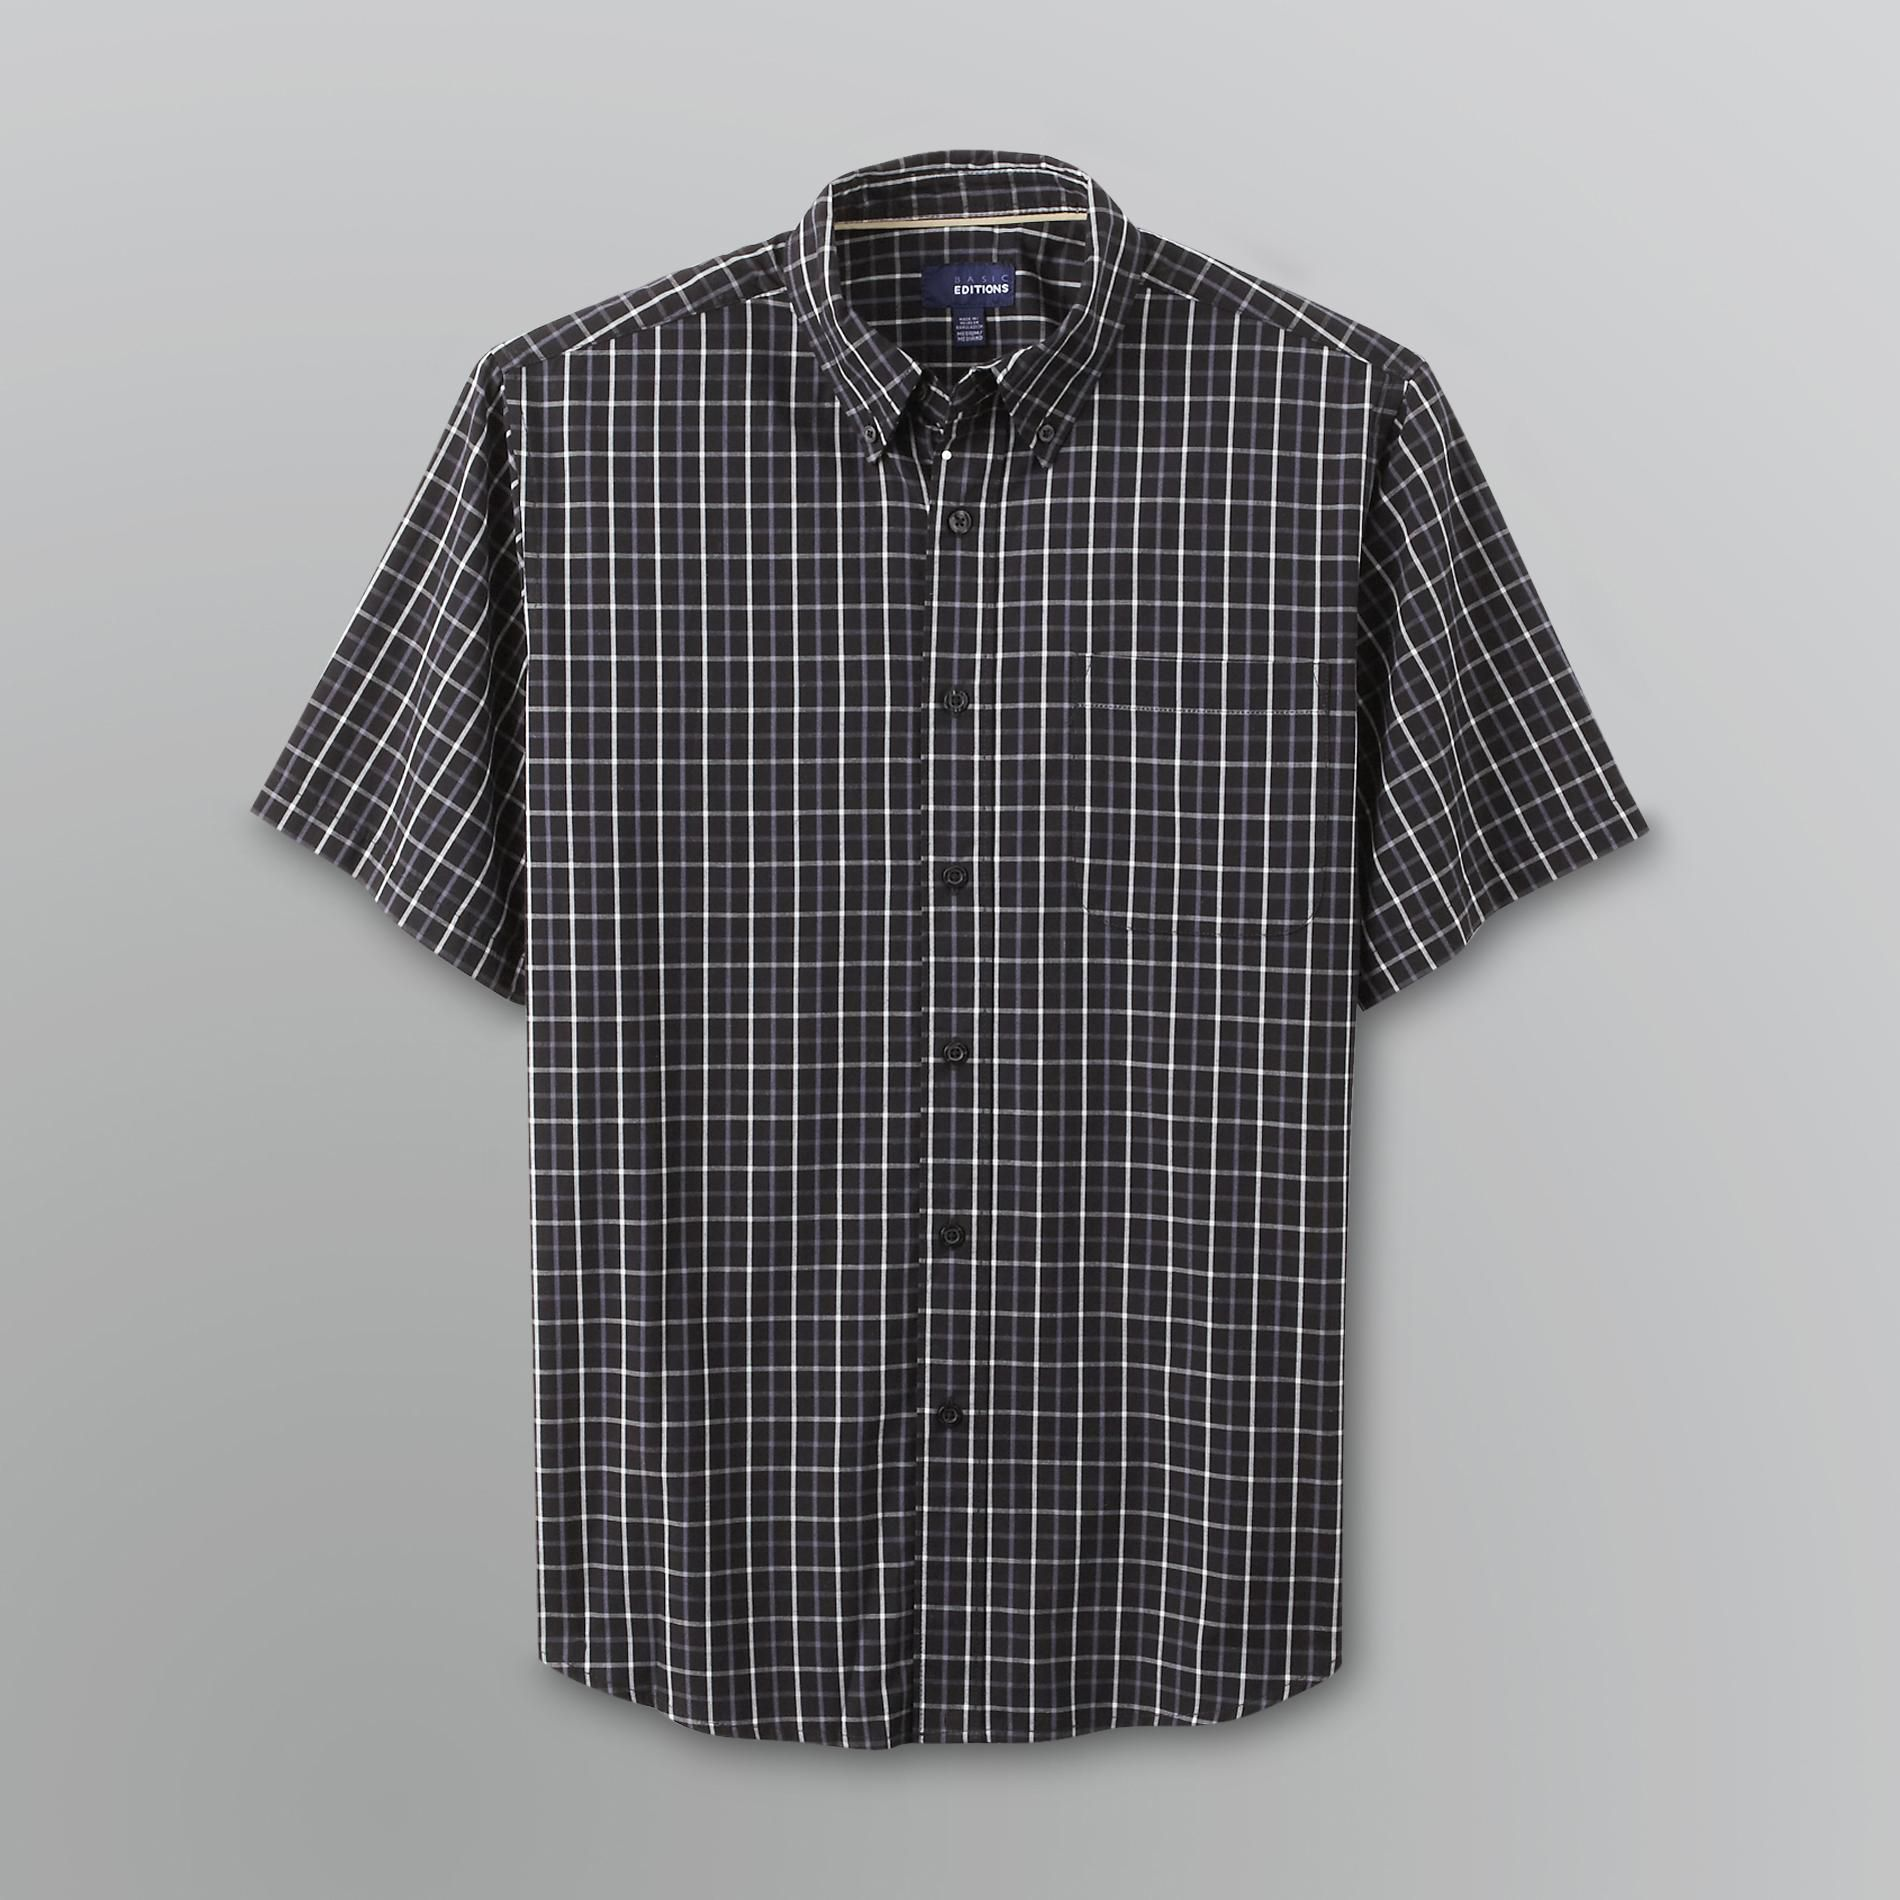 Basic Editions Men's Classic Fit Short Sleeve Plaid Dress Shirt